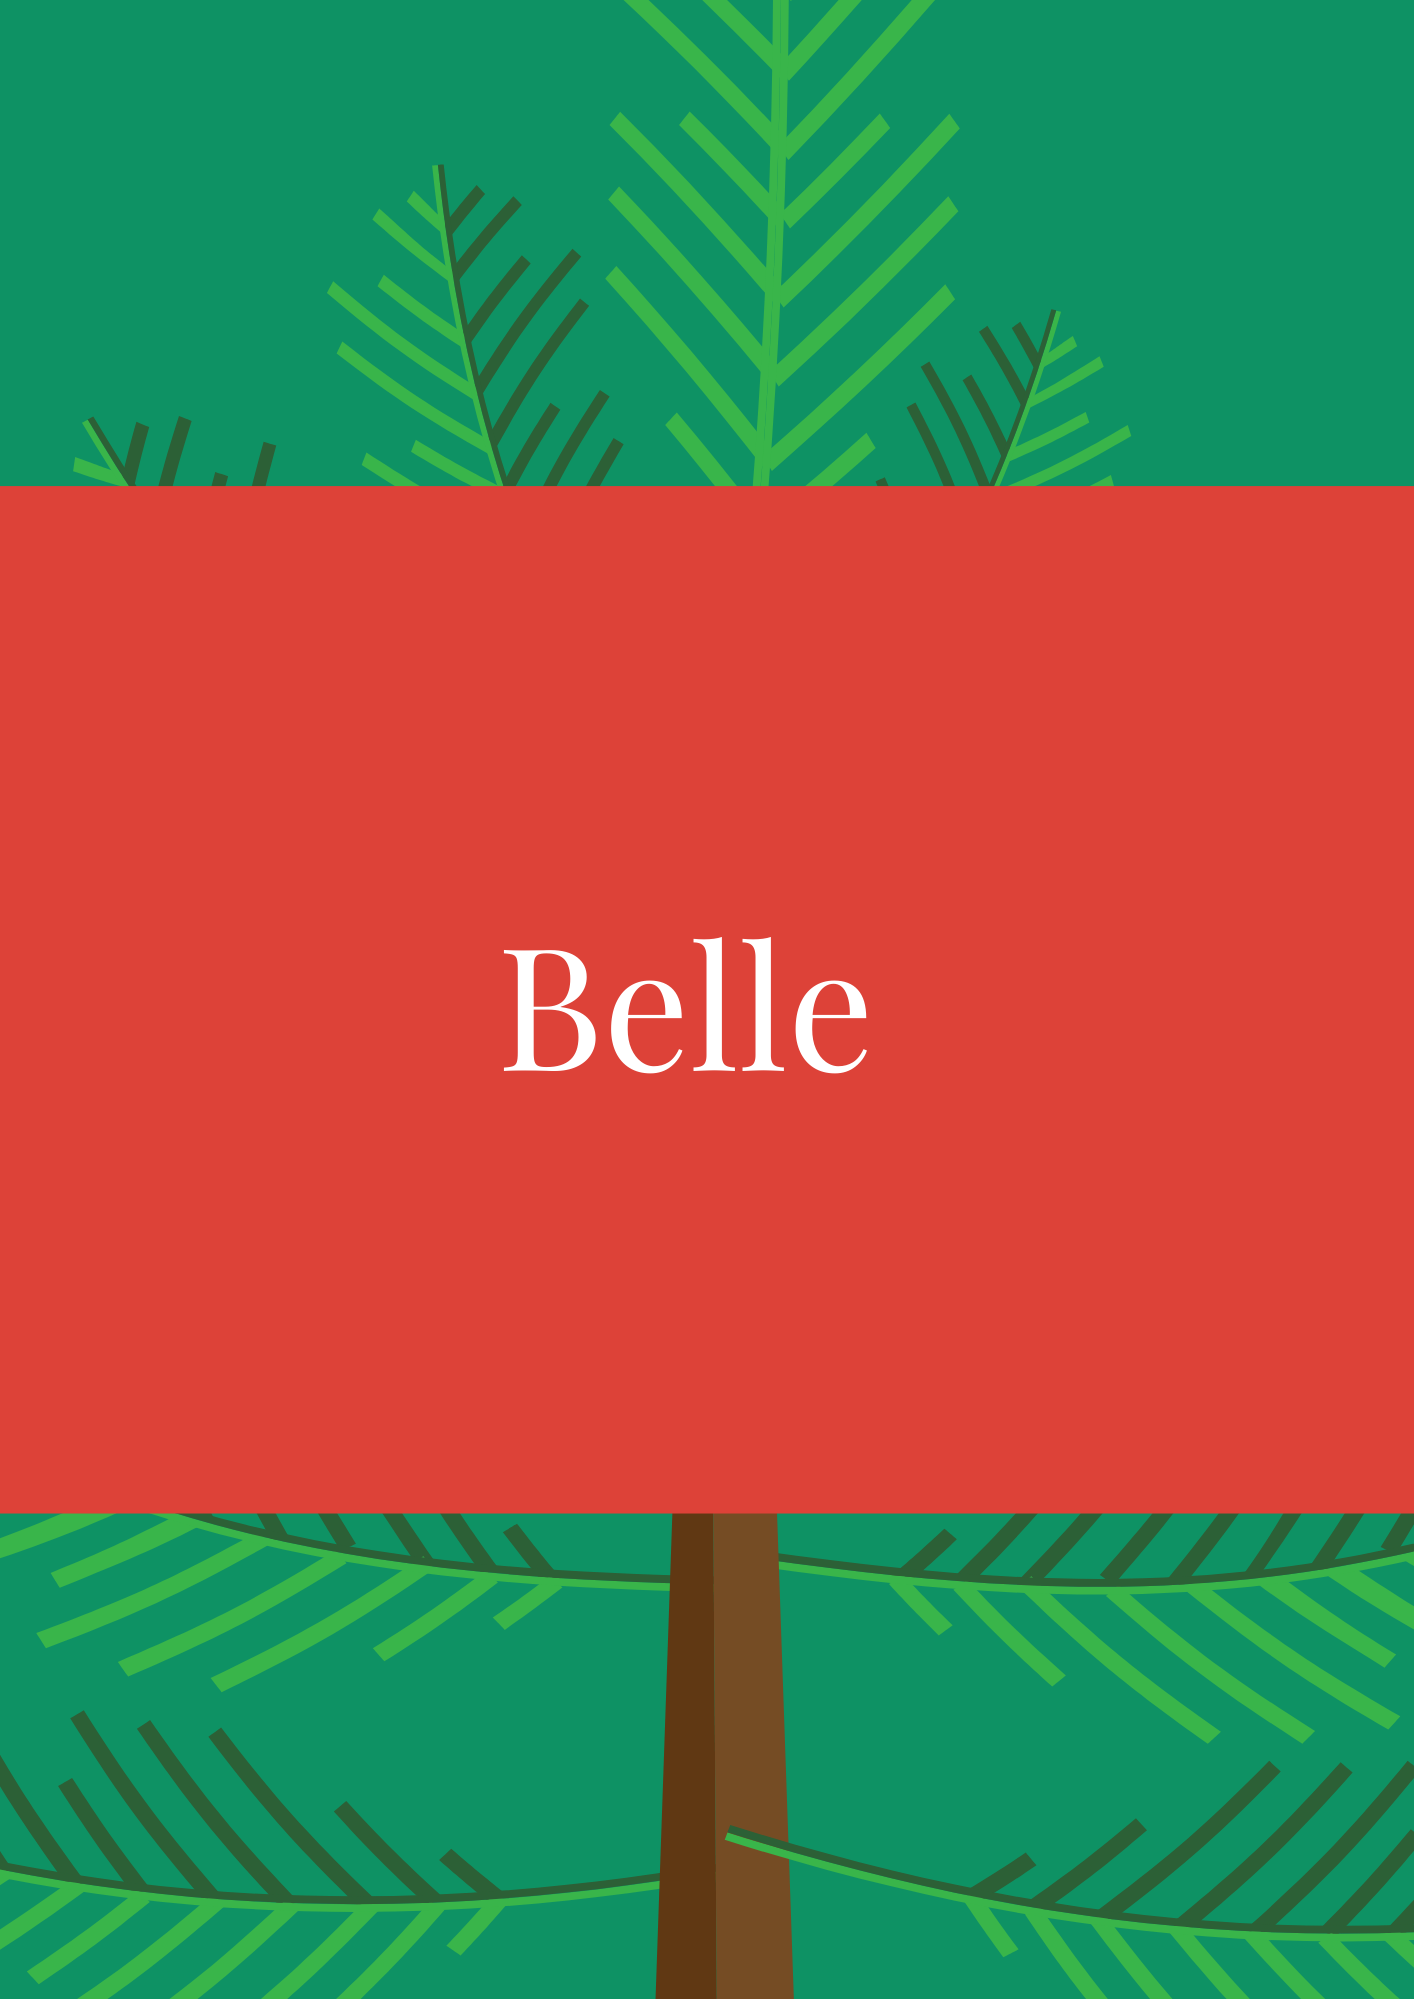 Belle Elf Names